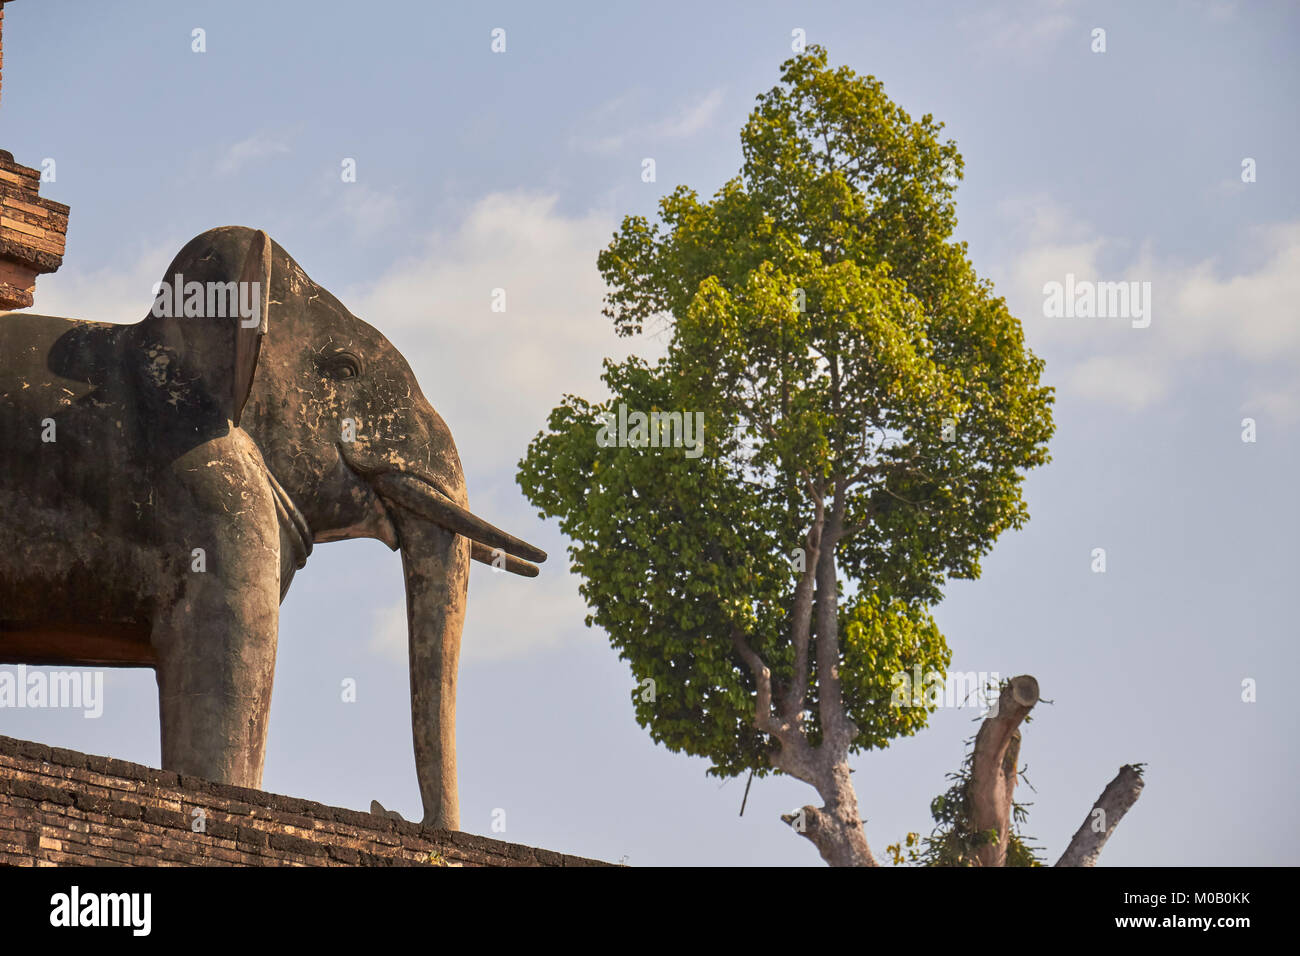 Elephant carvings, Wat Chedi Luang temple and grounds, Chiang Mai, Thailand - Stock Image